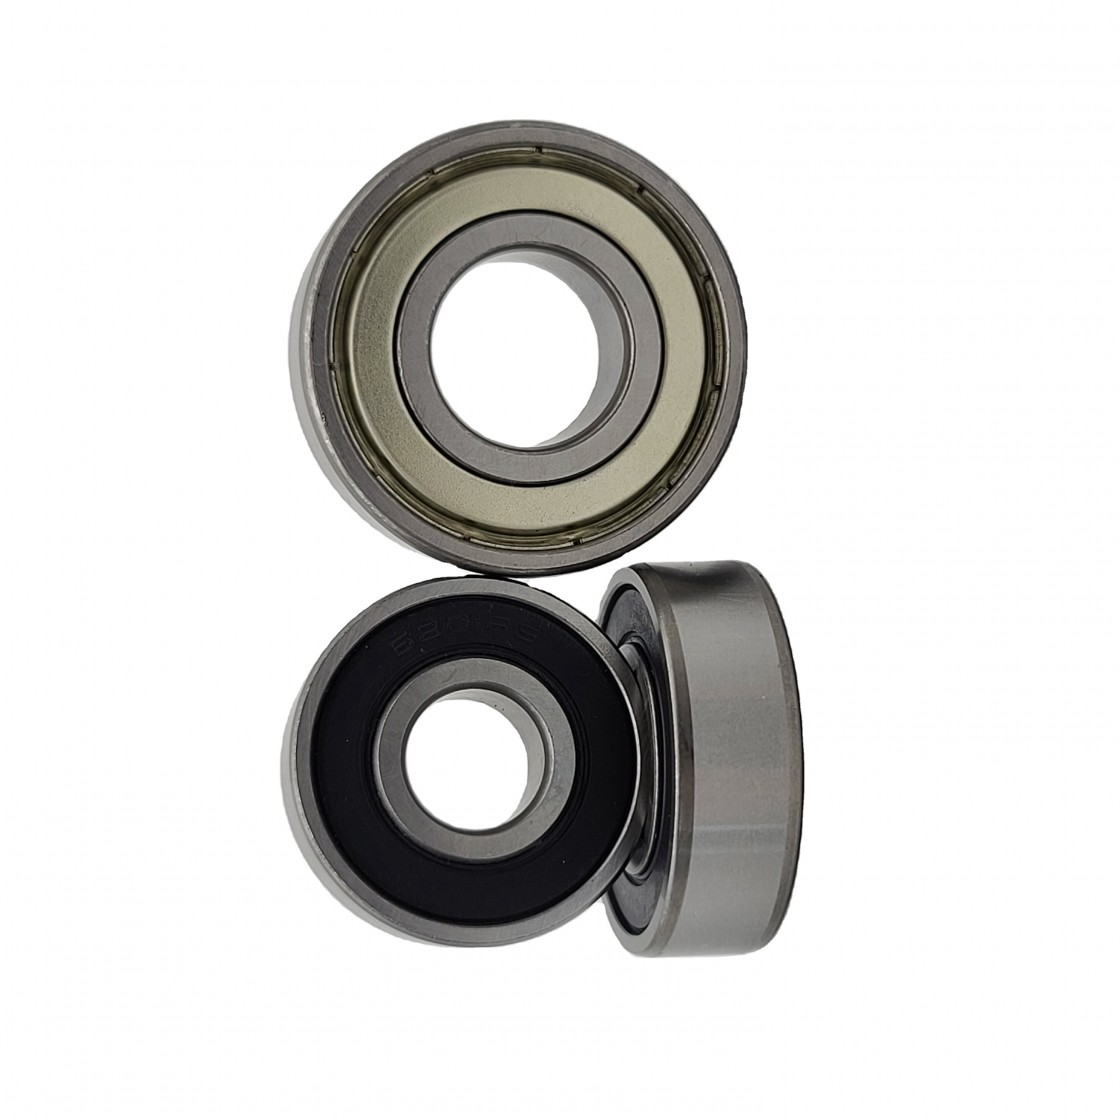 Large stocks Si3N4 ceramic bearing 608 8x22x7mm